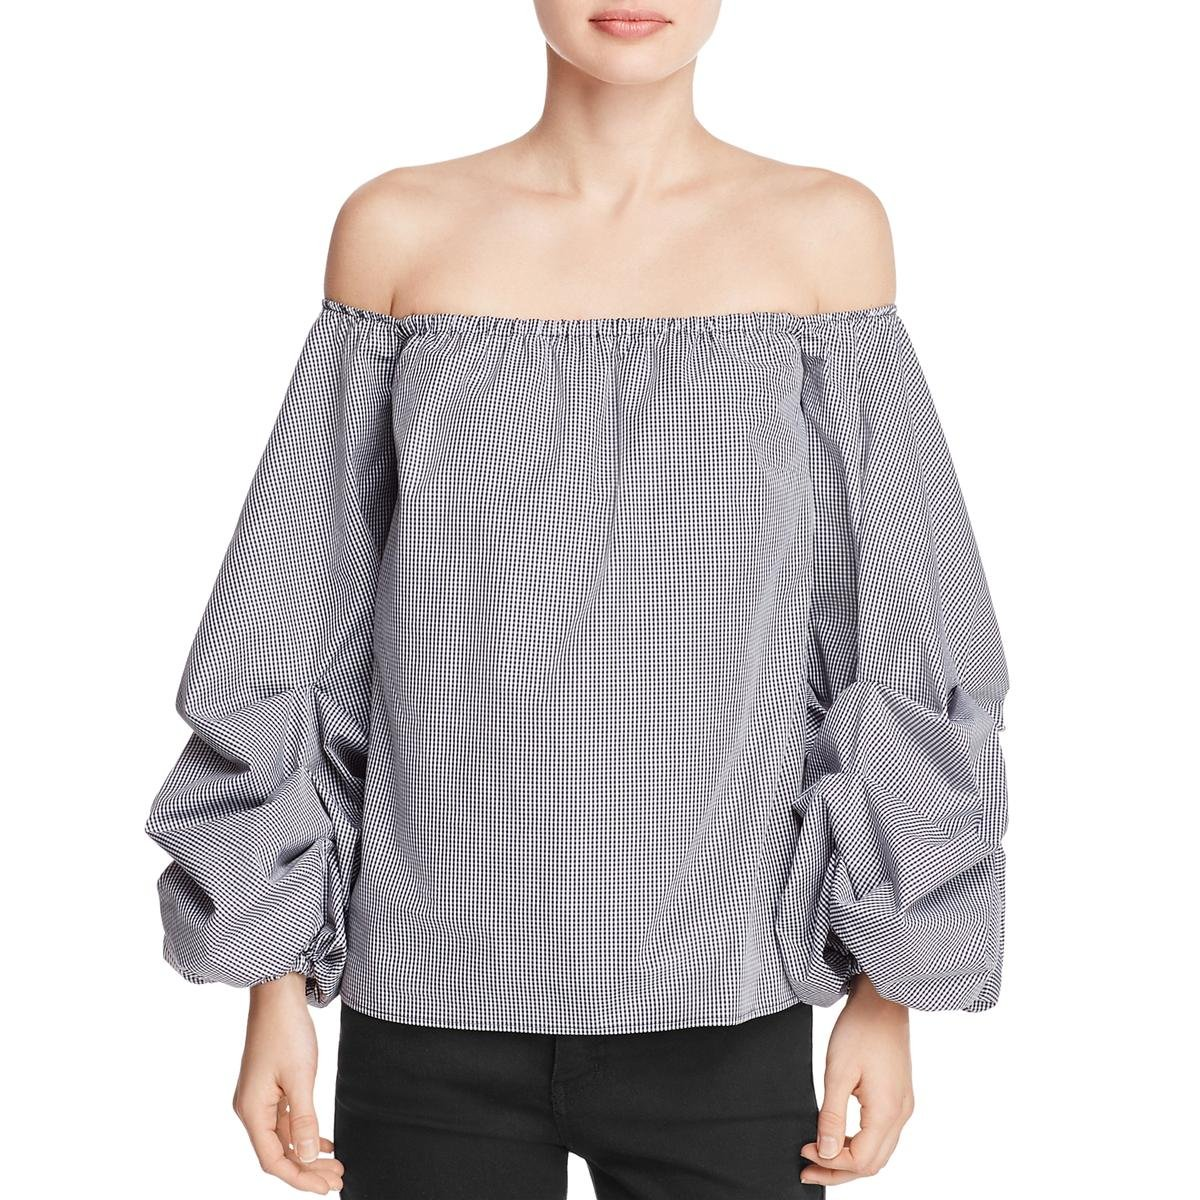 Petersyn Womens Mini Check Off-The-Shoulder Crop Top B/W L by Petersyn (Image #2)